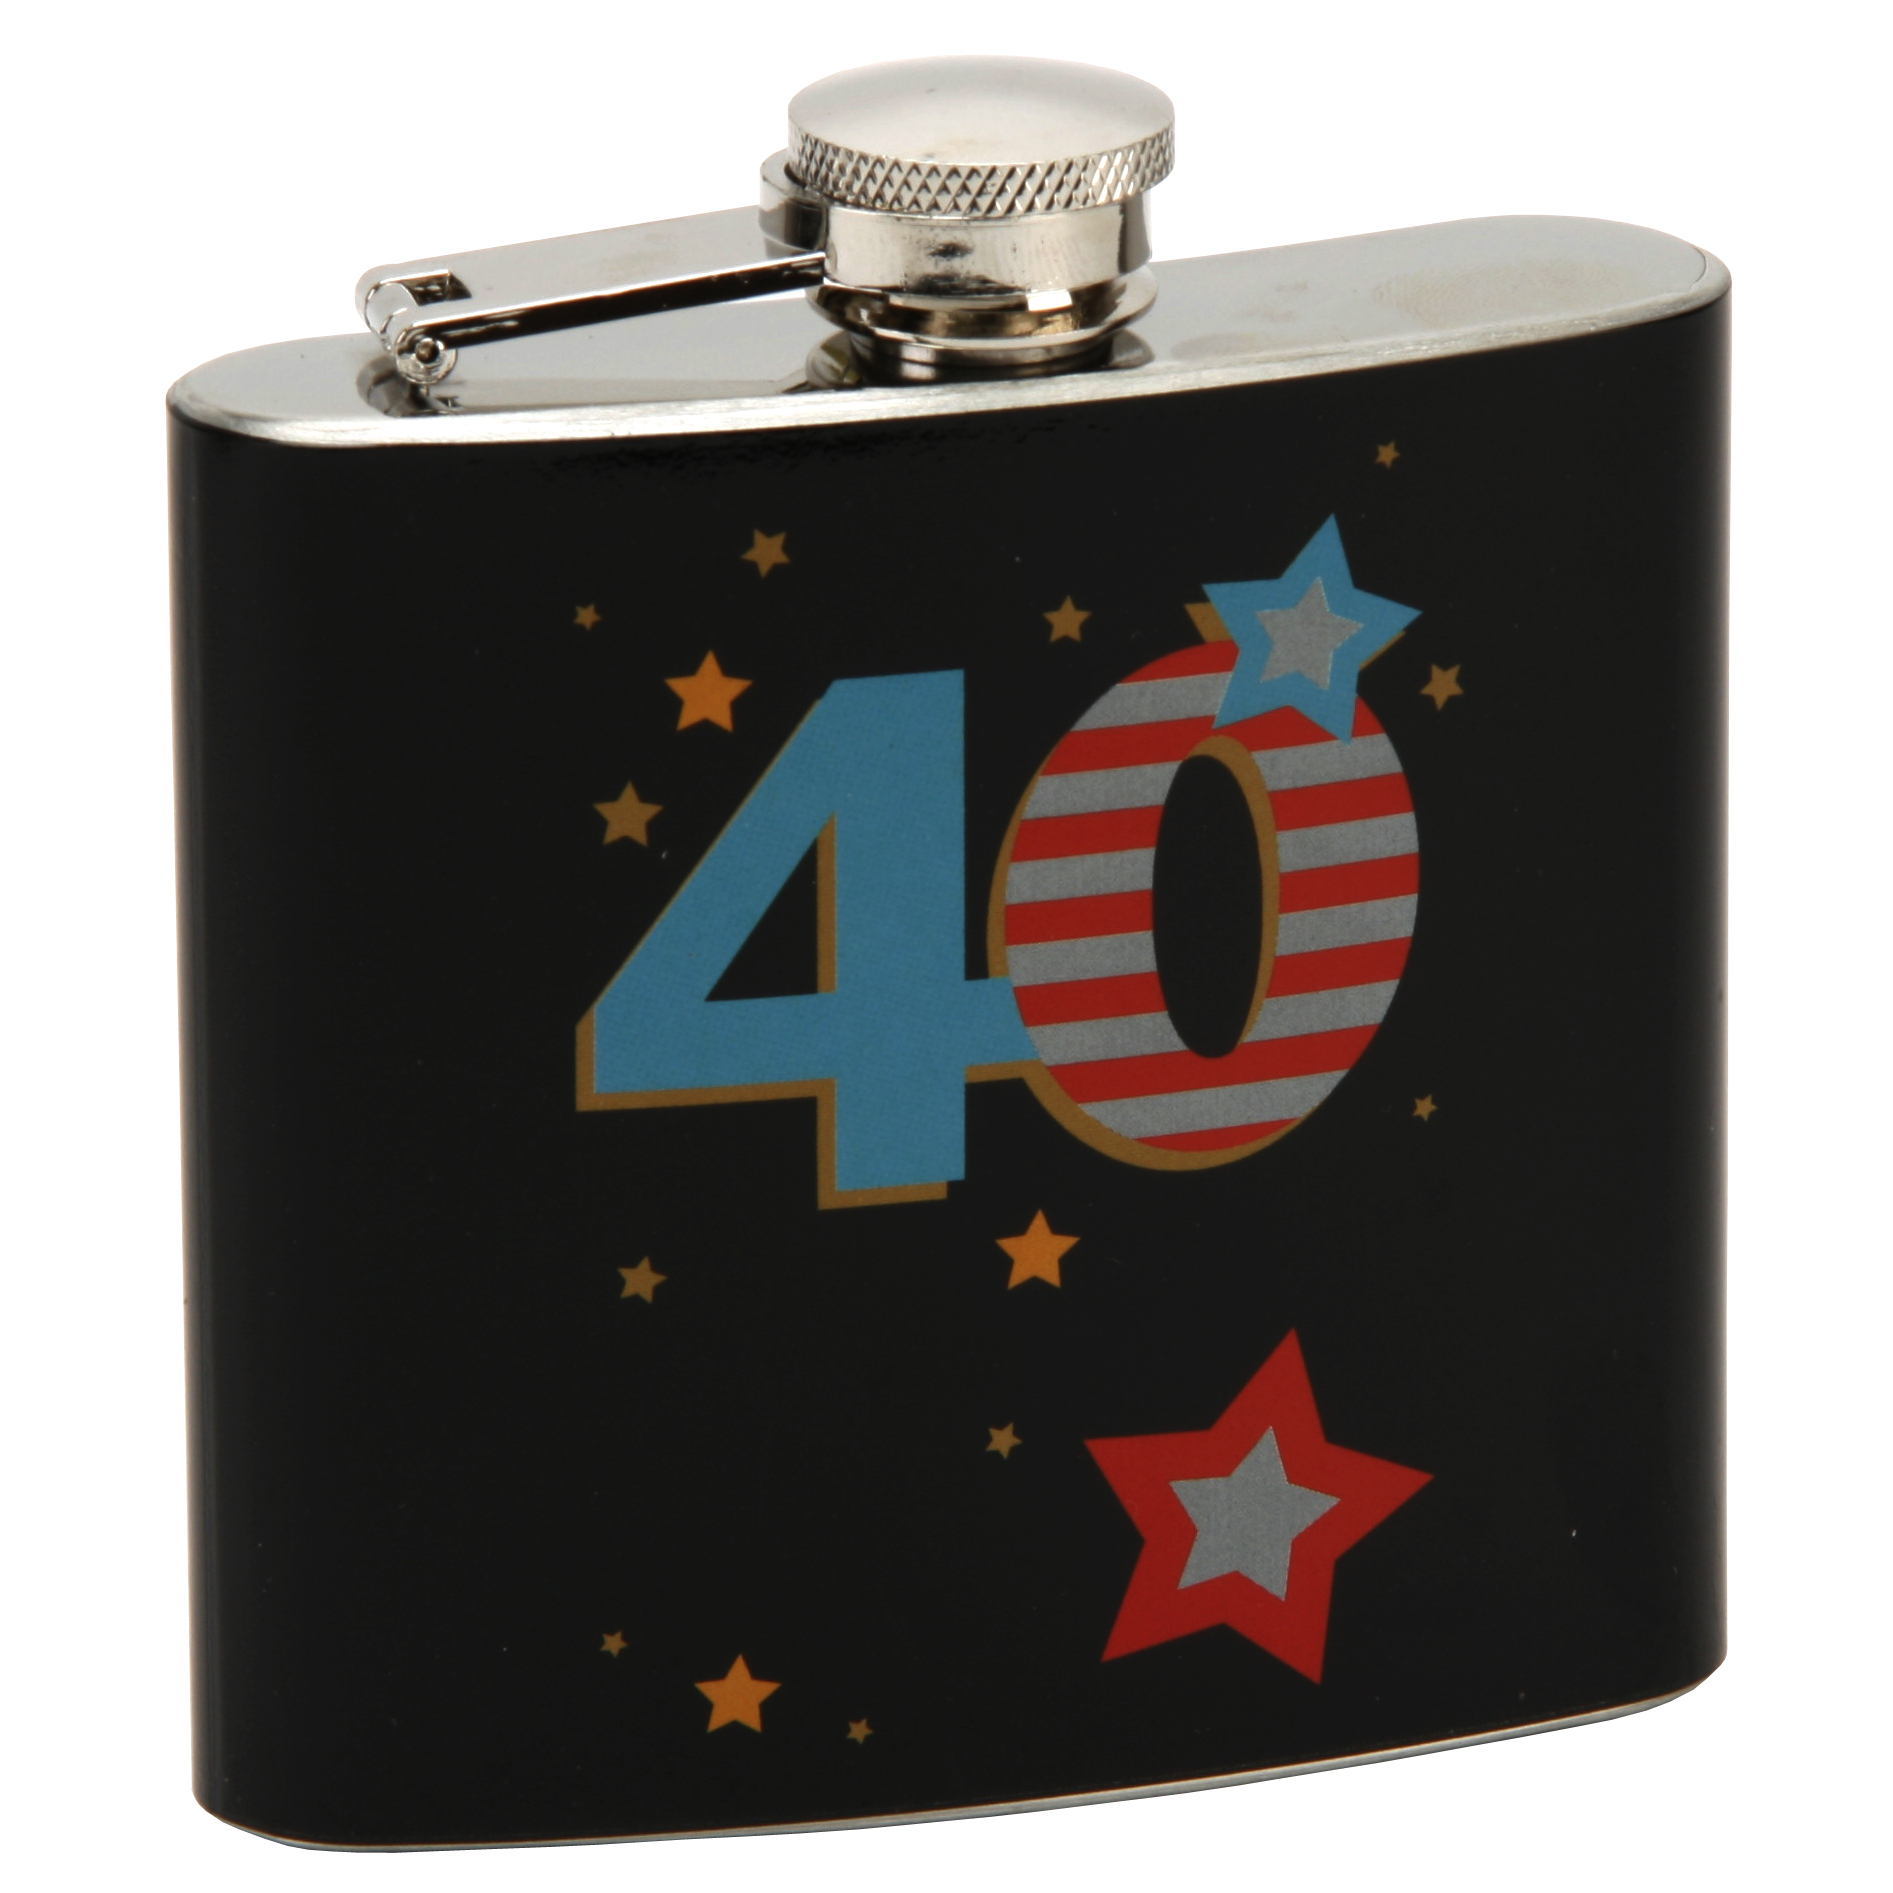 40th Birthday Hip Flask In Gift Box By Talking Pictures